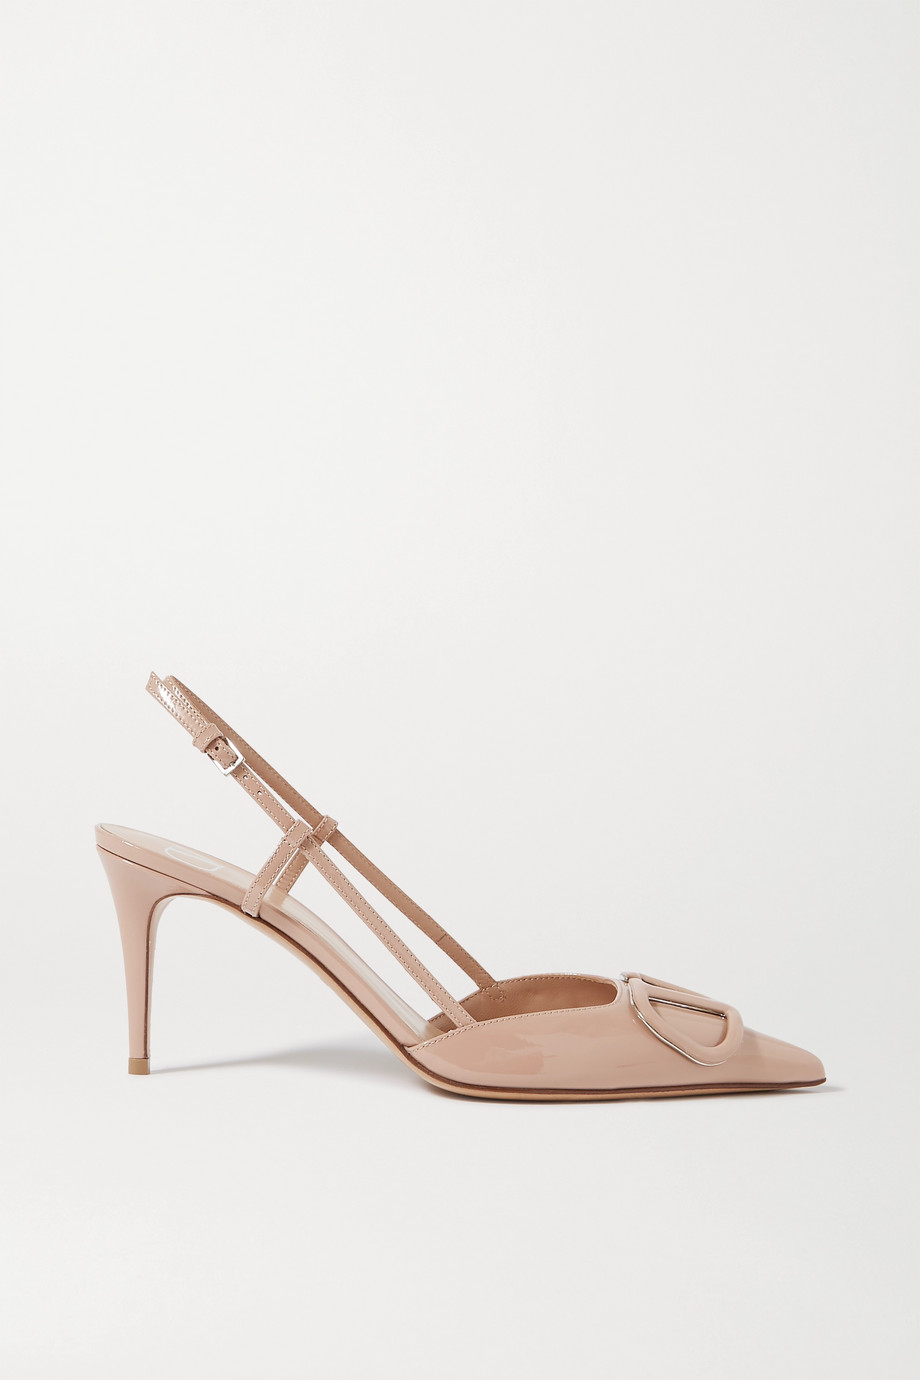 VALENTINO Valentino Garavani VLOGO 80 patent-leather pumps